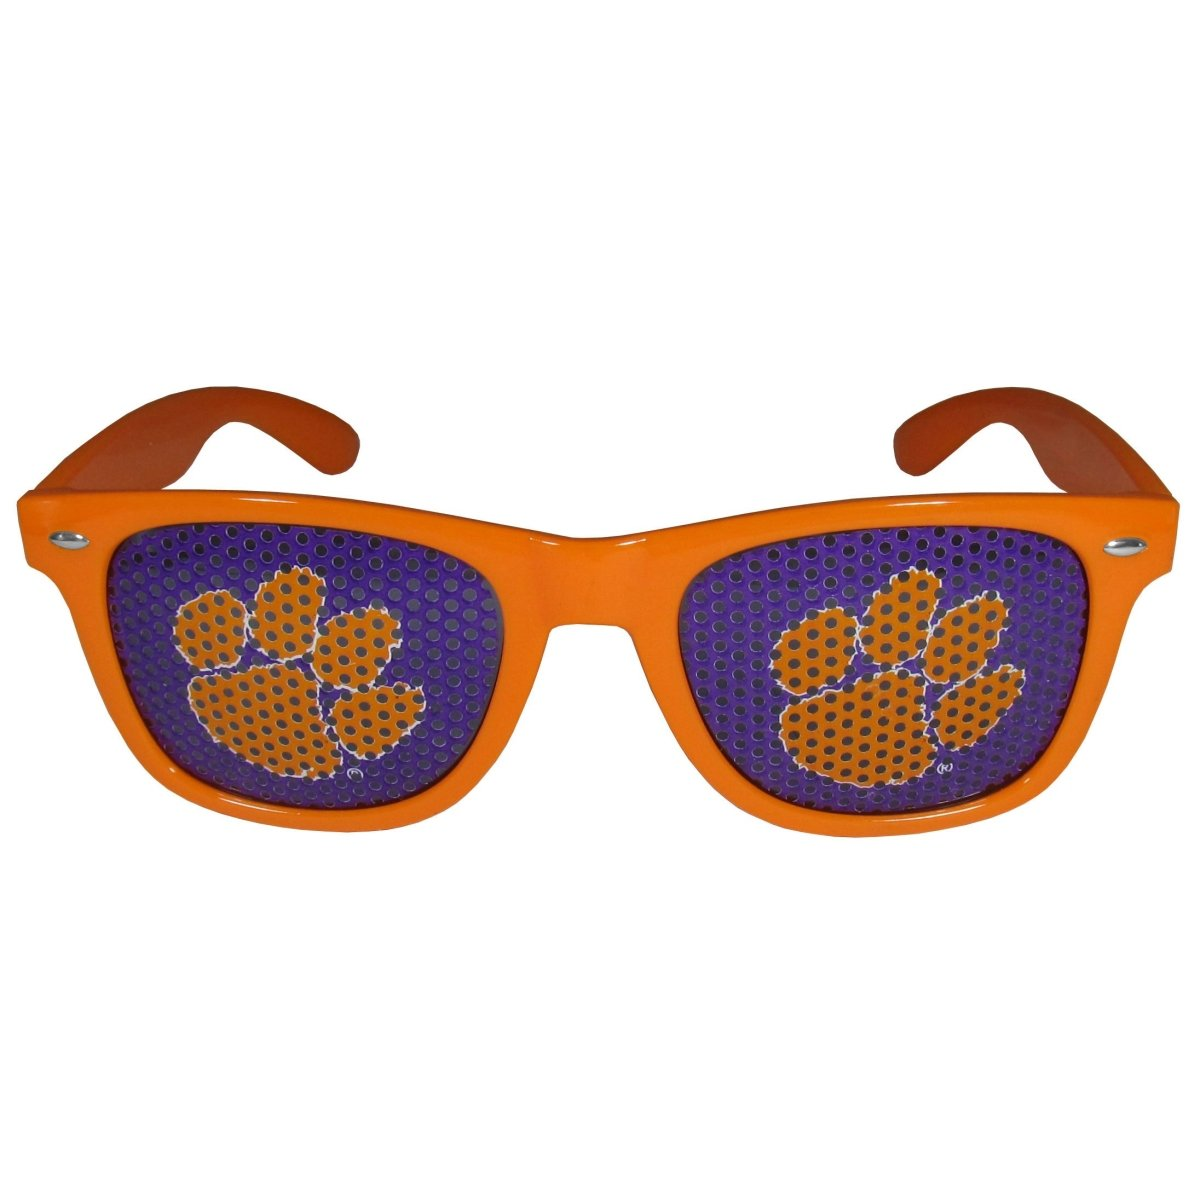 Siskiyou Clemson Tigers Gameday Sunglasses With Paw Lenses - Mr. Knickerbocker